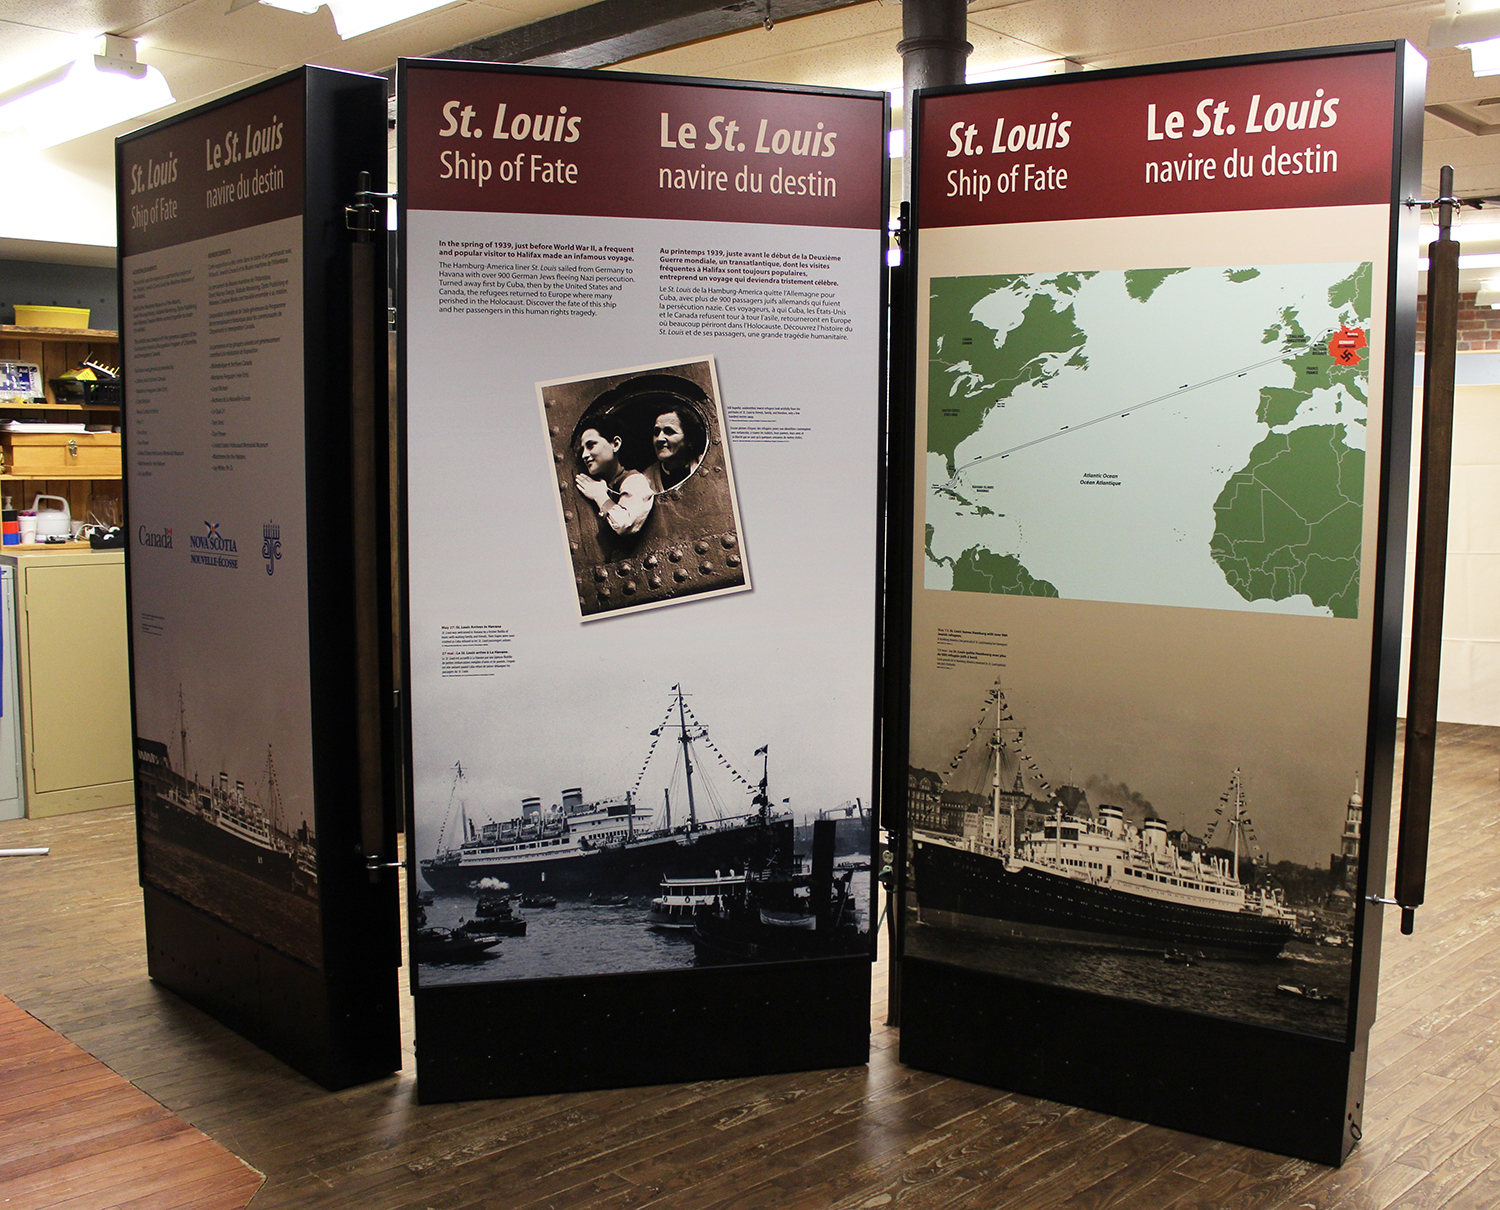 IMG_0283_St_Louis_introduction_1500.jpg